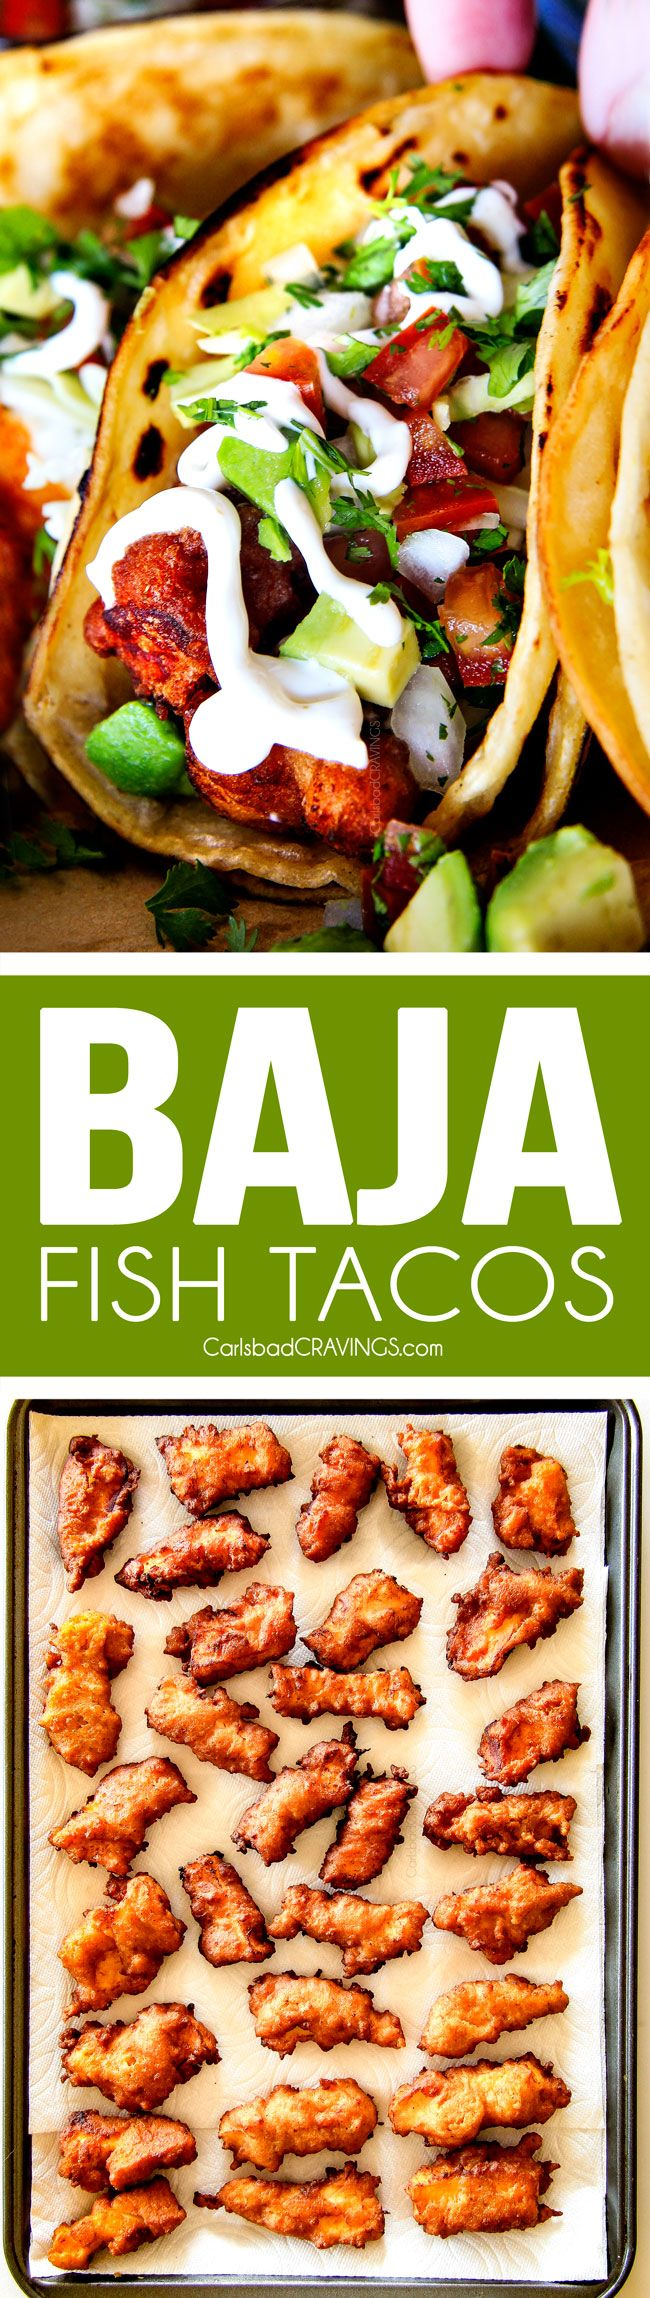 these Crispy fried Baja Fish Tacos are BETTER than any restaurant!!! I can't even believe how good these are and super easy with a one step batter. And don't skip the white sauce - its heavenly! (Crispy Baking Shrimp)